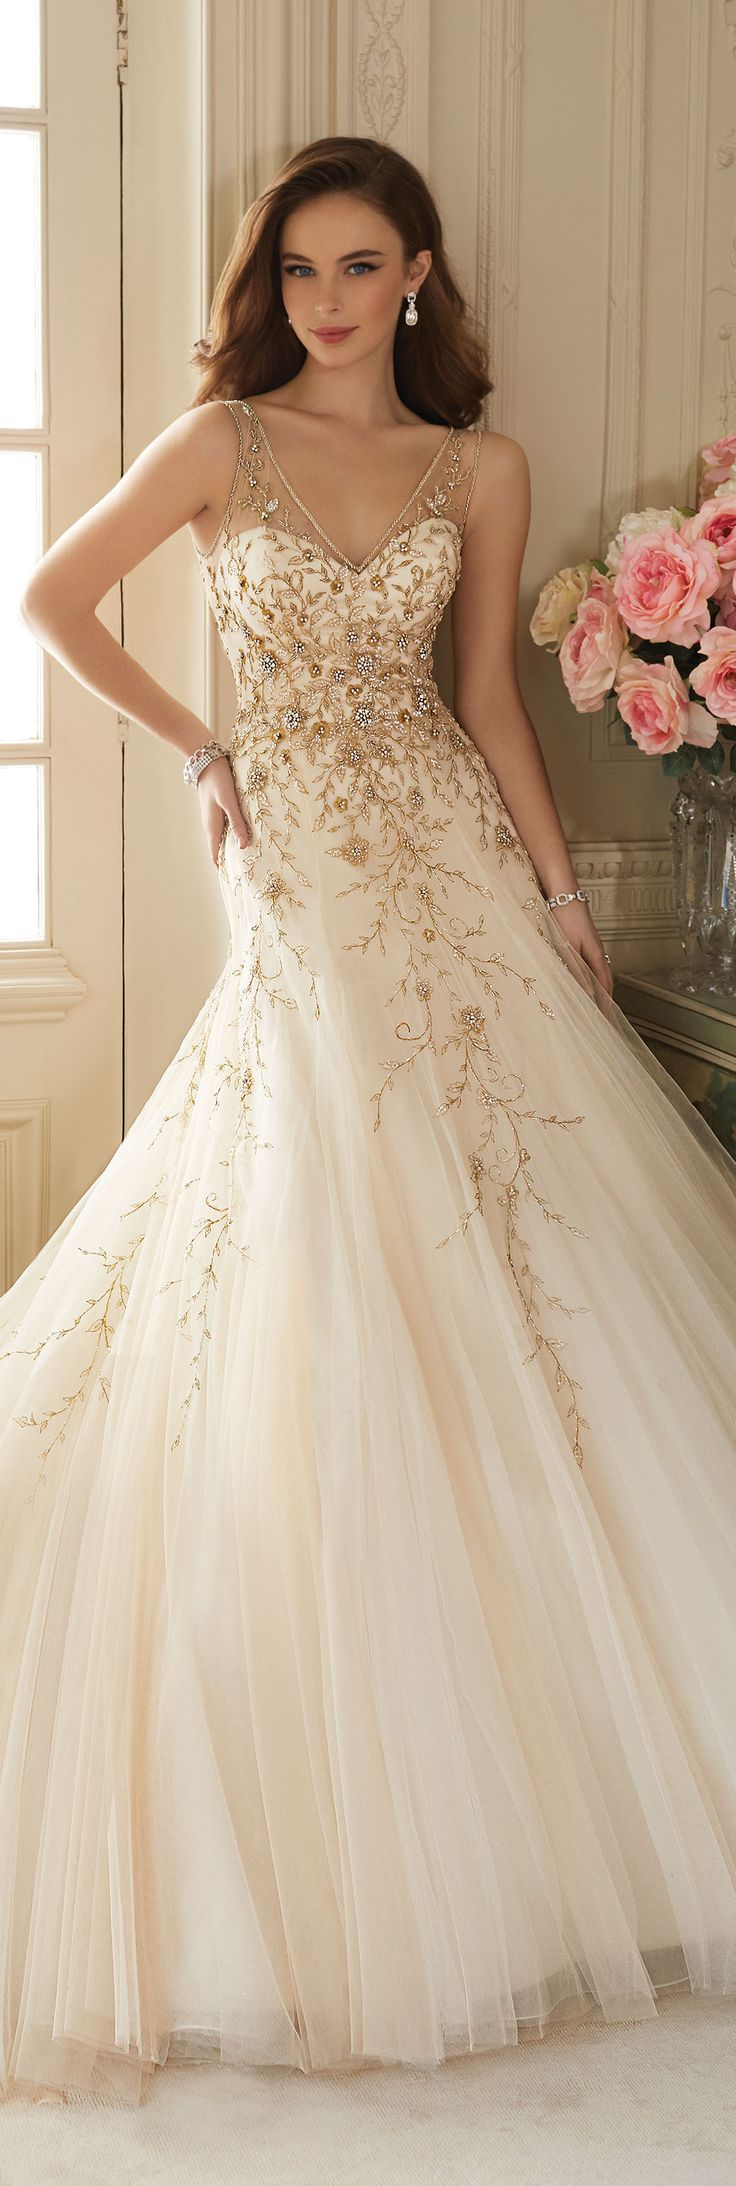 Wedding Dresses by Sophia Tolli - Spring 2016  Collection - Style No. Y11650 - Darice #tulleweddingdress